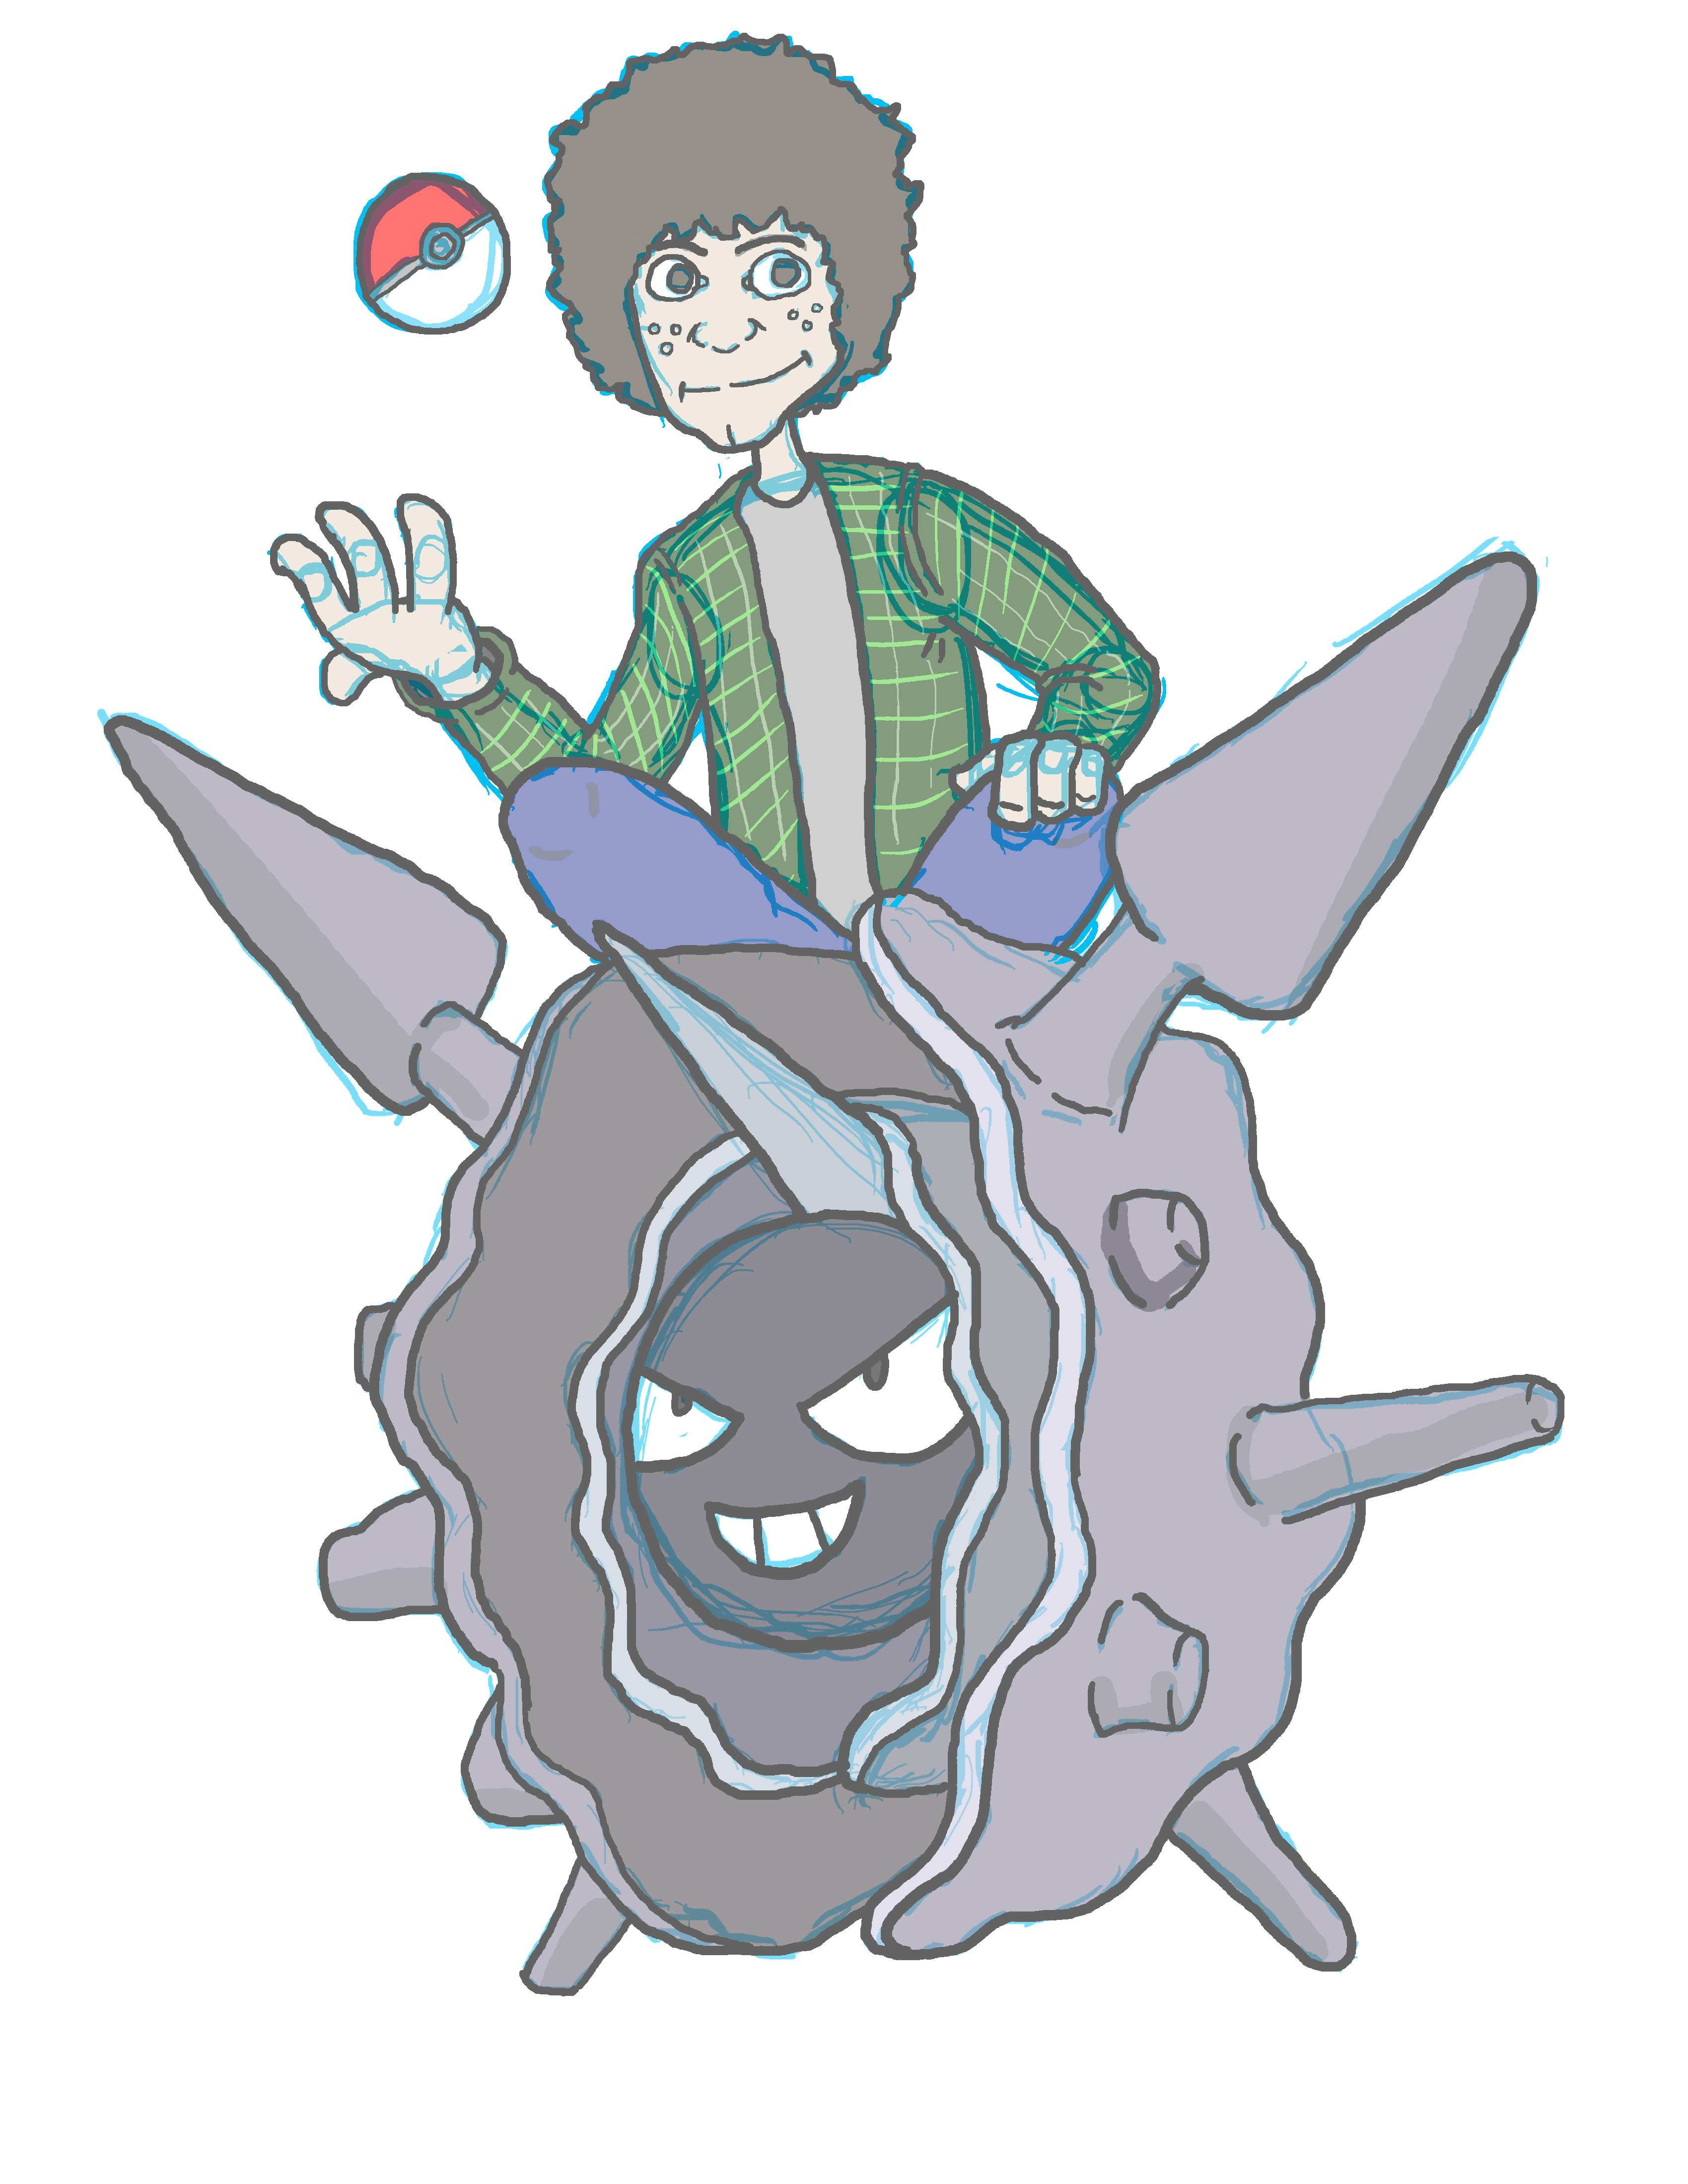 Pokemon Trainer and Cloyster